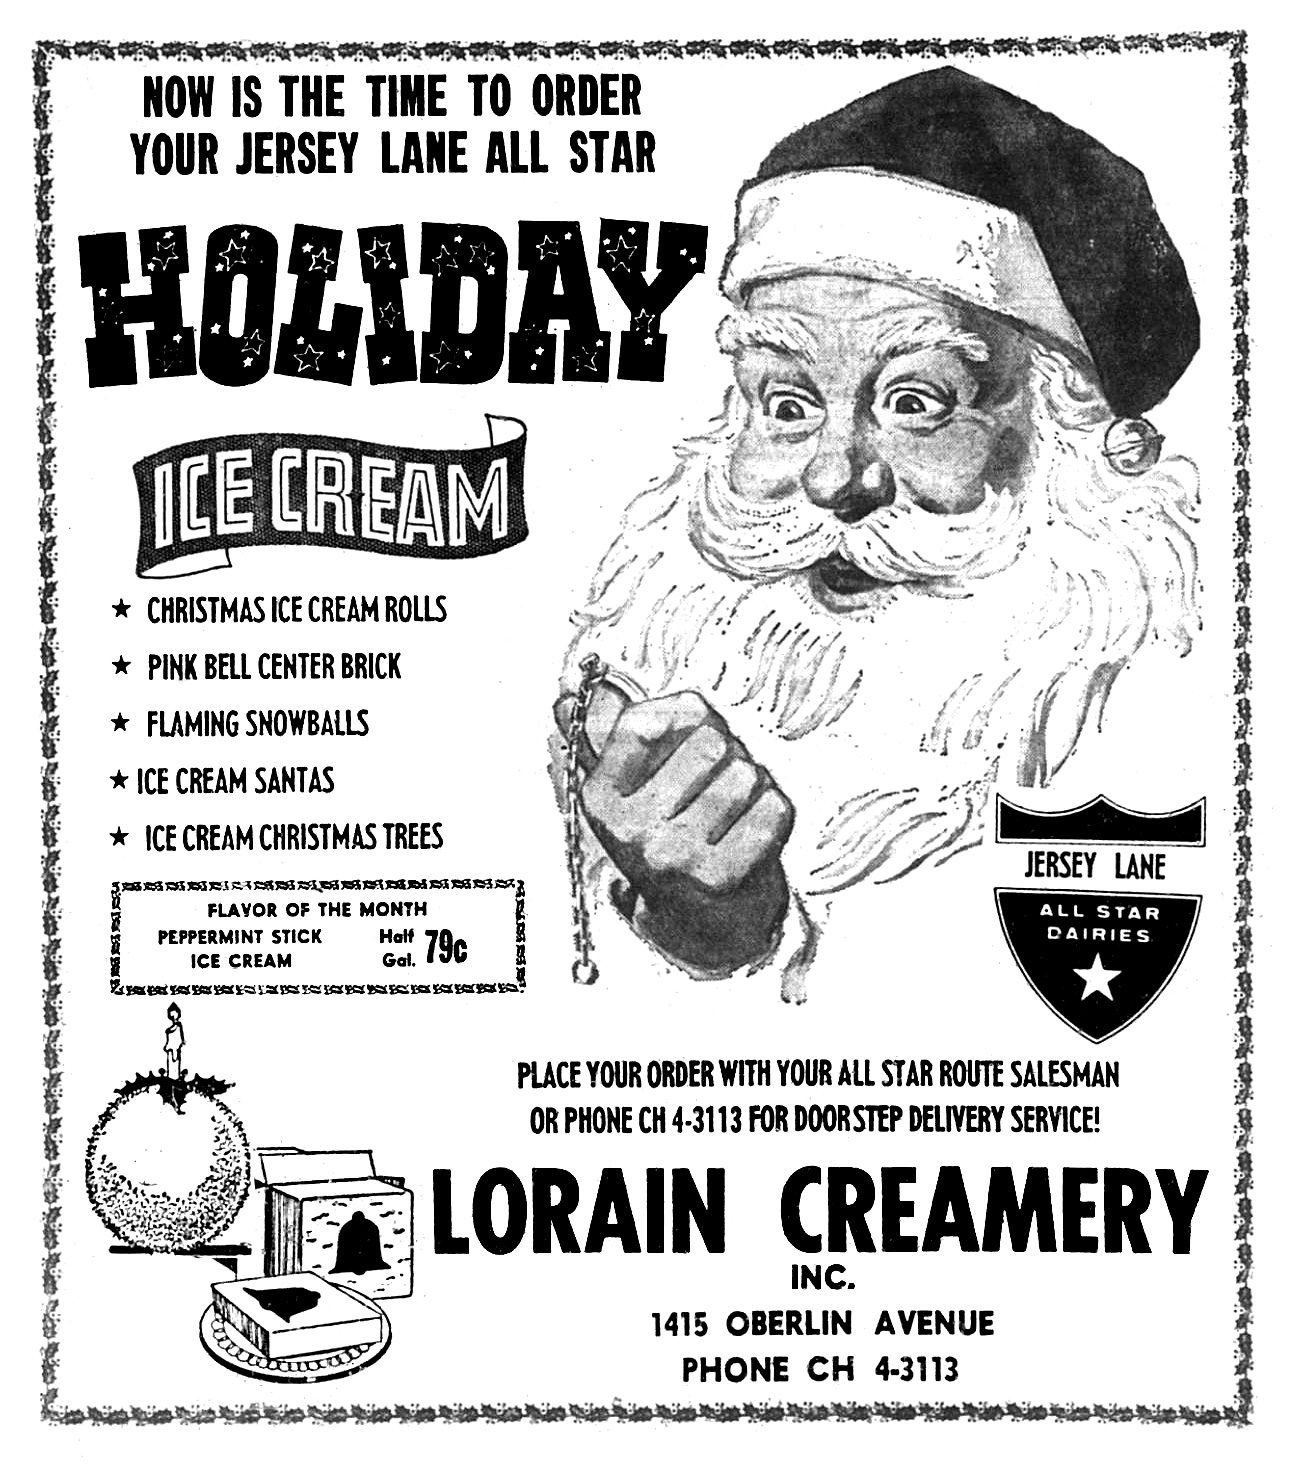 Lorain Creamery - published in the Lorain Journal - December 15, 1964